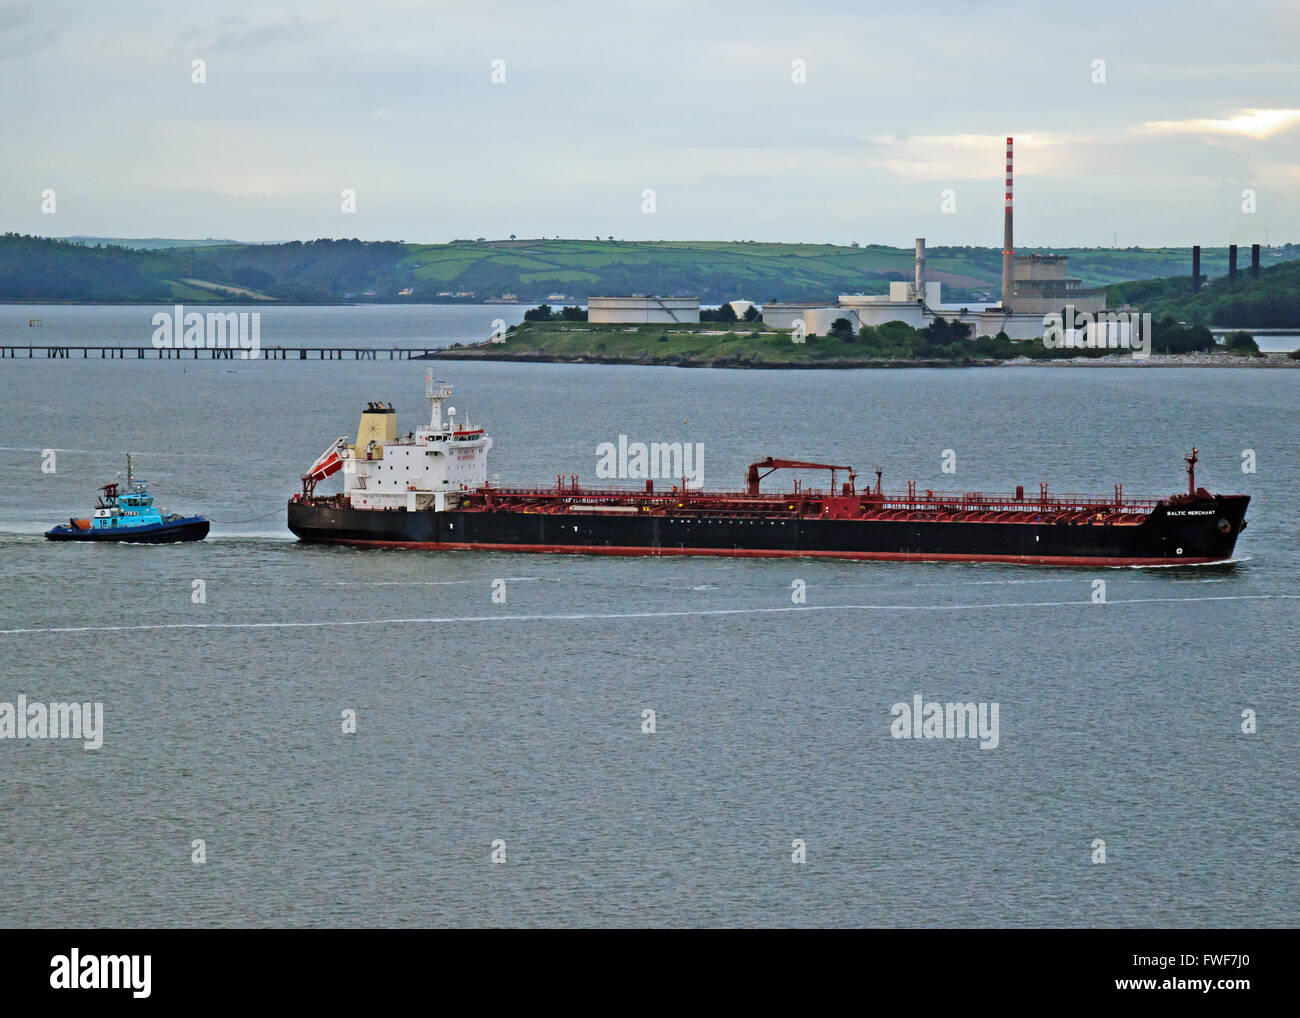 Crude oil tanker Baltic Merchant sails from Whitegate Oil Terminal, Co Cork, Ireland assisted by refinery tug Alex. - Stock Image